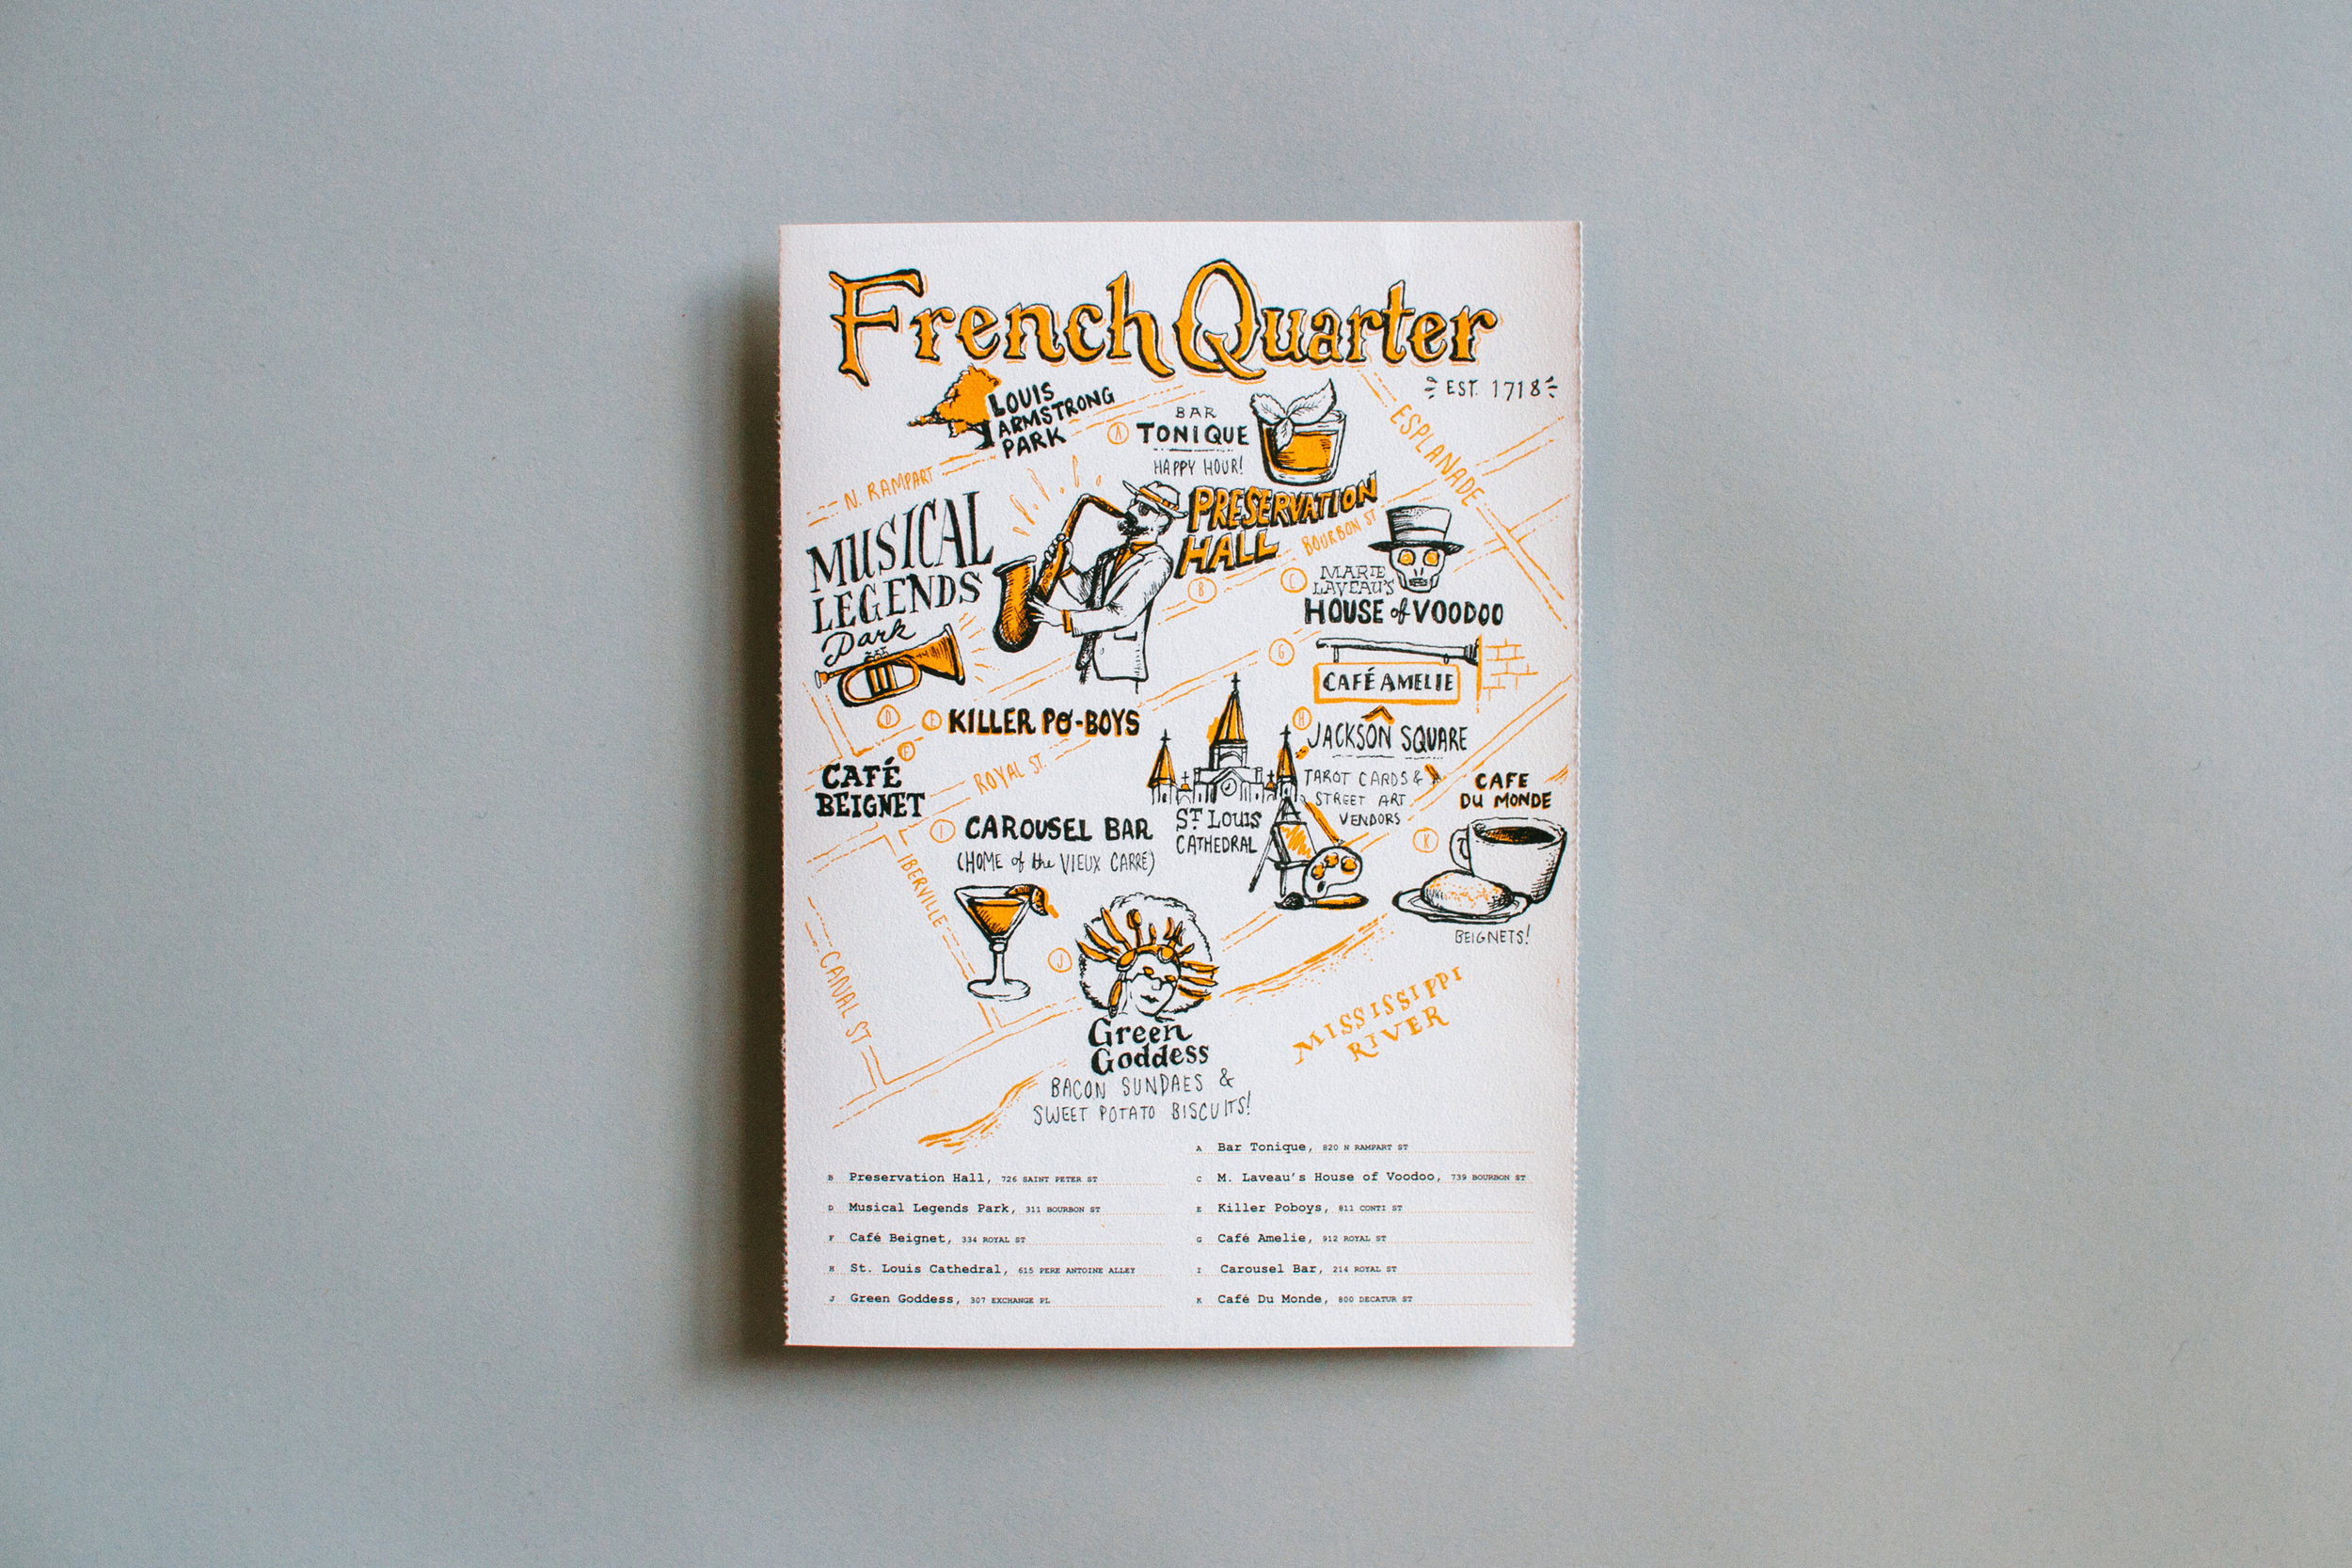 Illustrated neighborhood map and hand lettering for the French Quarter of New Orleans. Features Louis Armstrong Park, Bar Tonique, Preservation Hall Jazz, the House of Voodoo, Cafe Amelie, Musical Legends Park, Killer Po-Boys, Carousel Bar, the Cathedral, Cafe du Monde beignets, and Green Goddess.